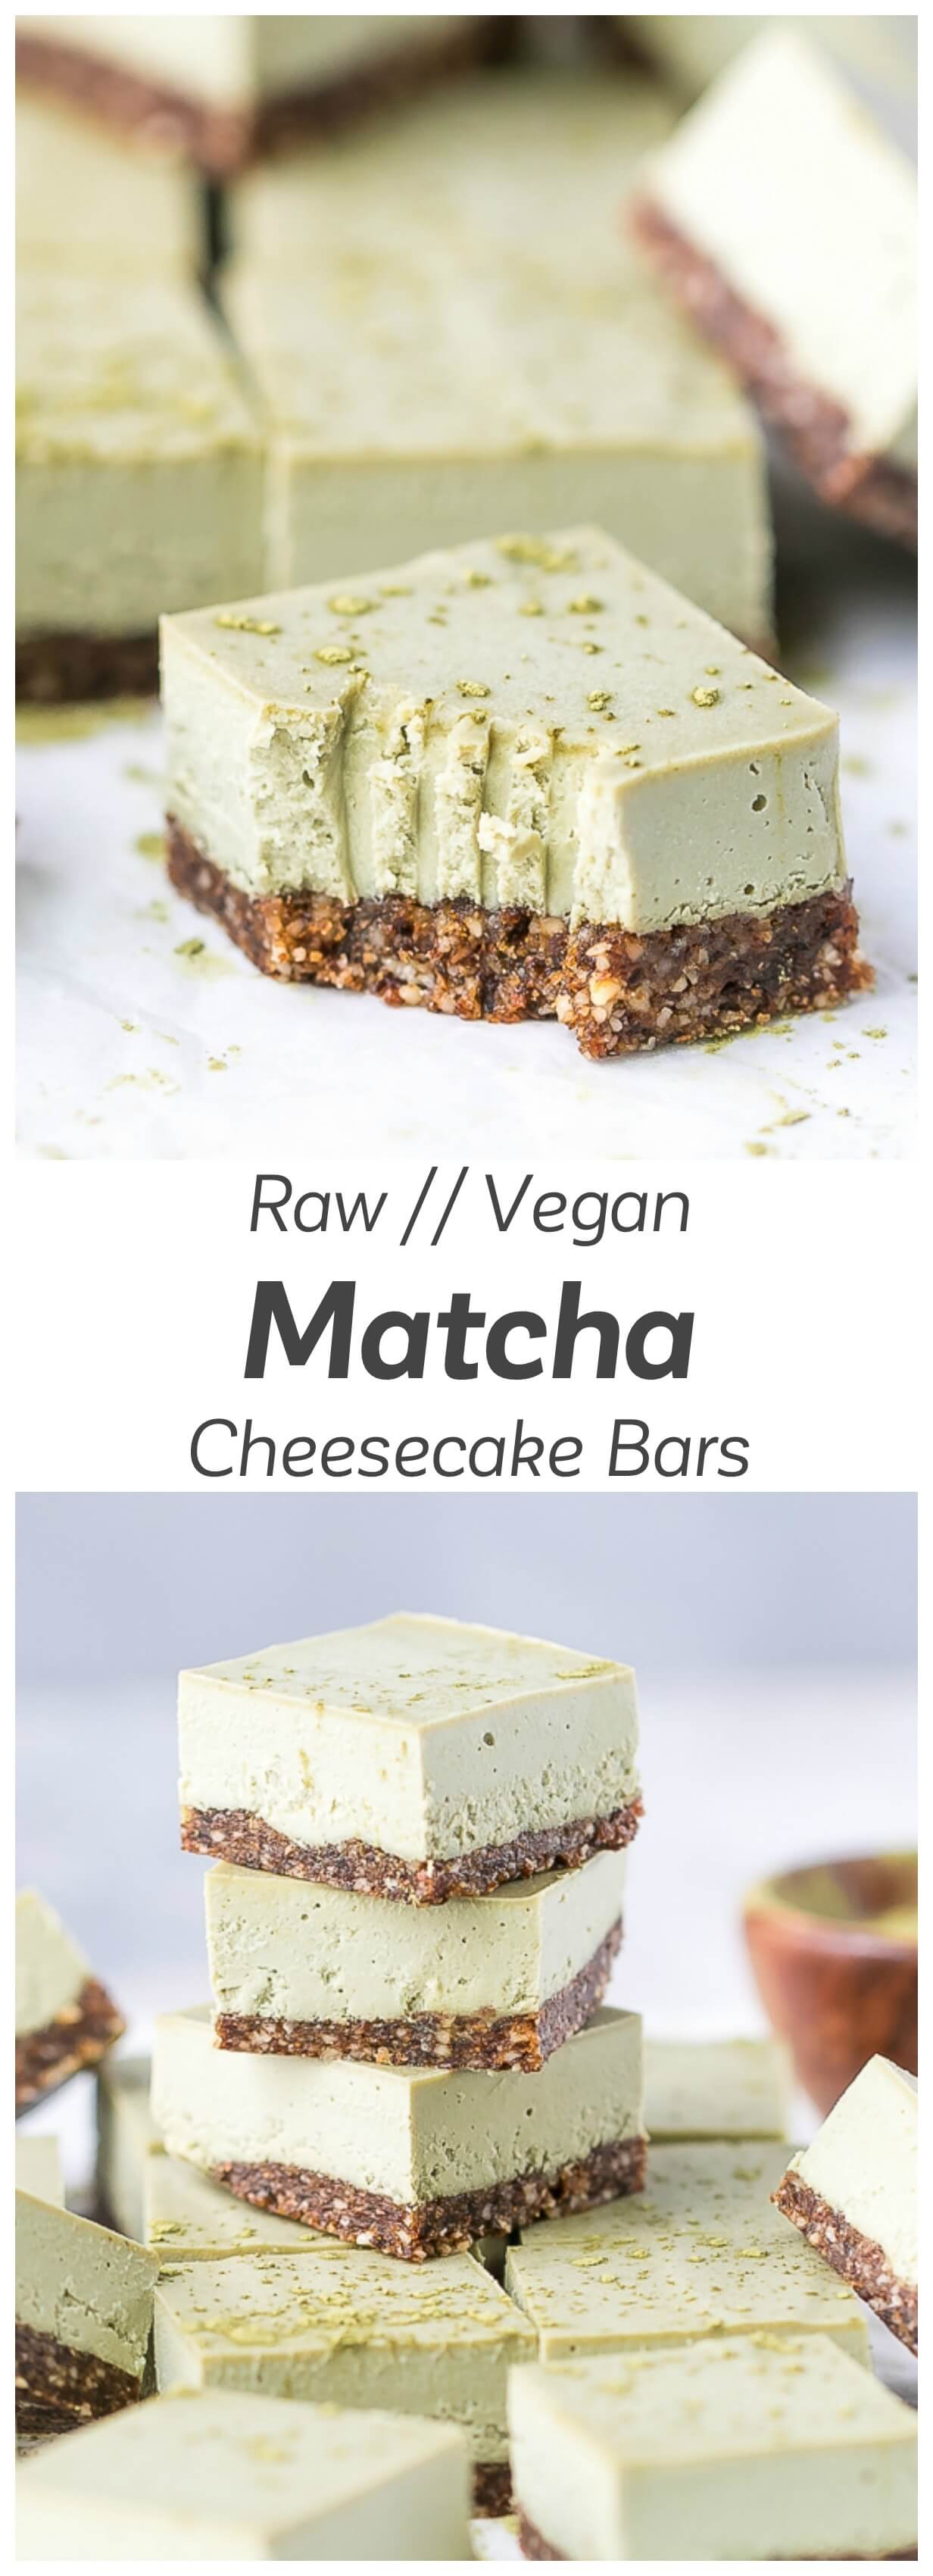 Raw Matcha Cheesecake Bars Recipe - clean, light and nutritious, these cheesecake bars taste creamy and delicious.